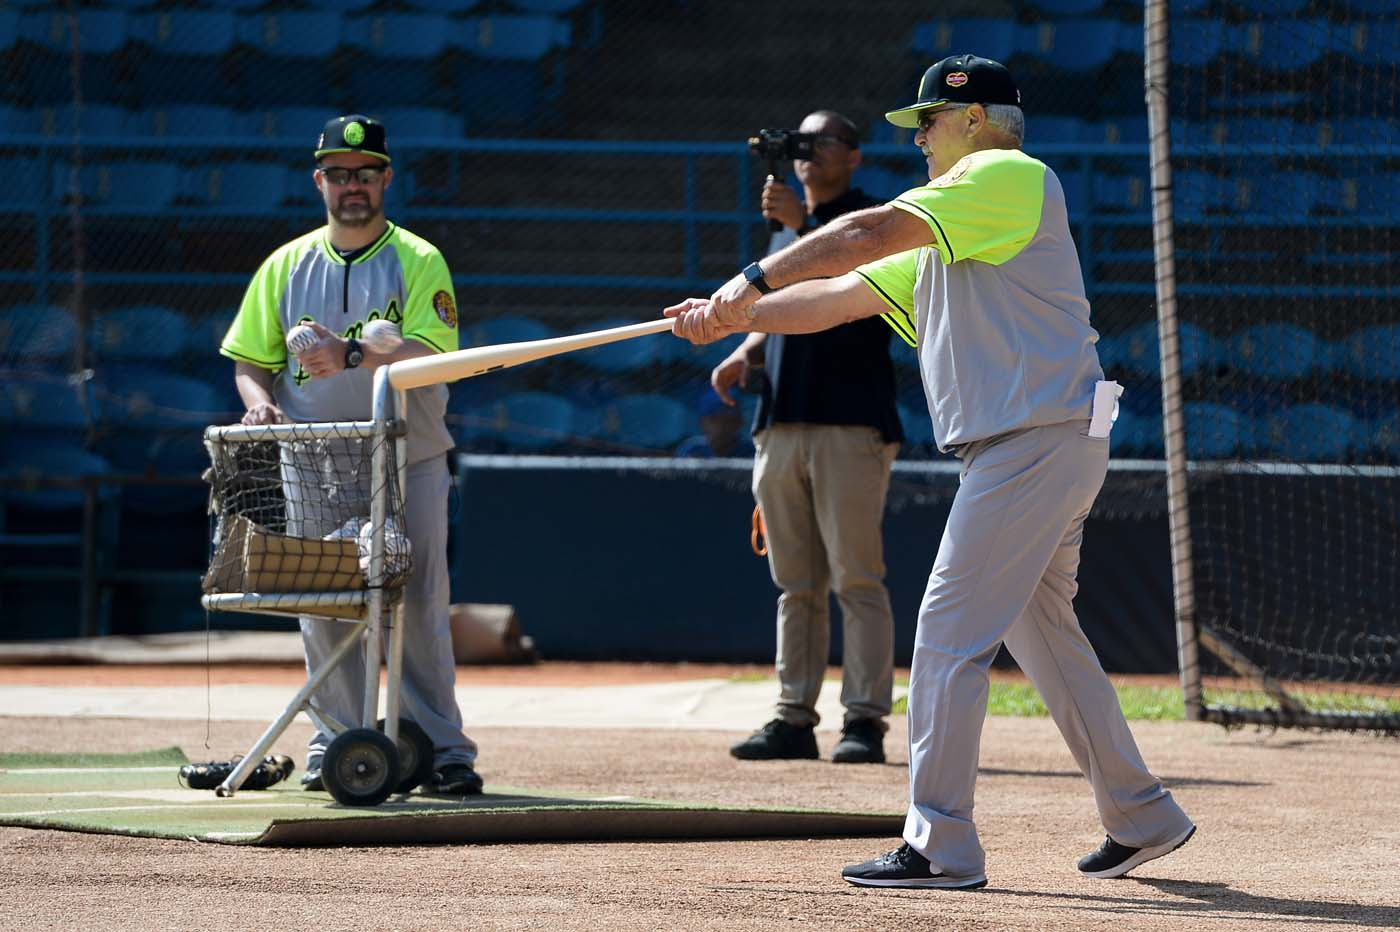 Mike Rojas (R), manager of the Venezuelan baseball team Leones del Caracas, attends a training session at the Universitario stadium in Caracas, on September 18, 2017. While baseball is Venezuela's national sport, some fans are angry that the government, given the severity of the economic crisis and the political tension, will spend nearly ten million dollars on organizing the upcoming Winter League rather than on imports of food and medicine. / AFP PHOTO / FEDERICO PARRA